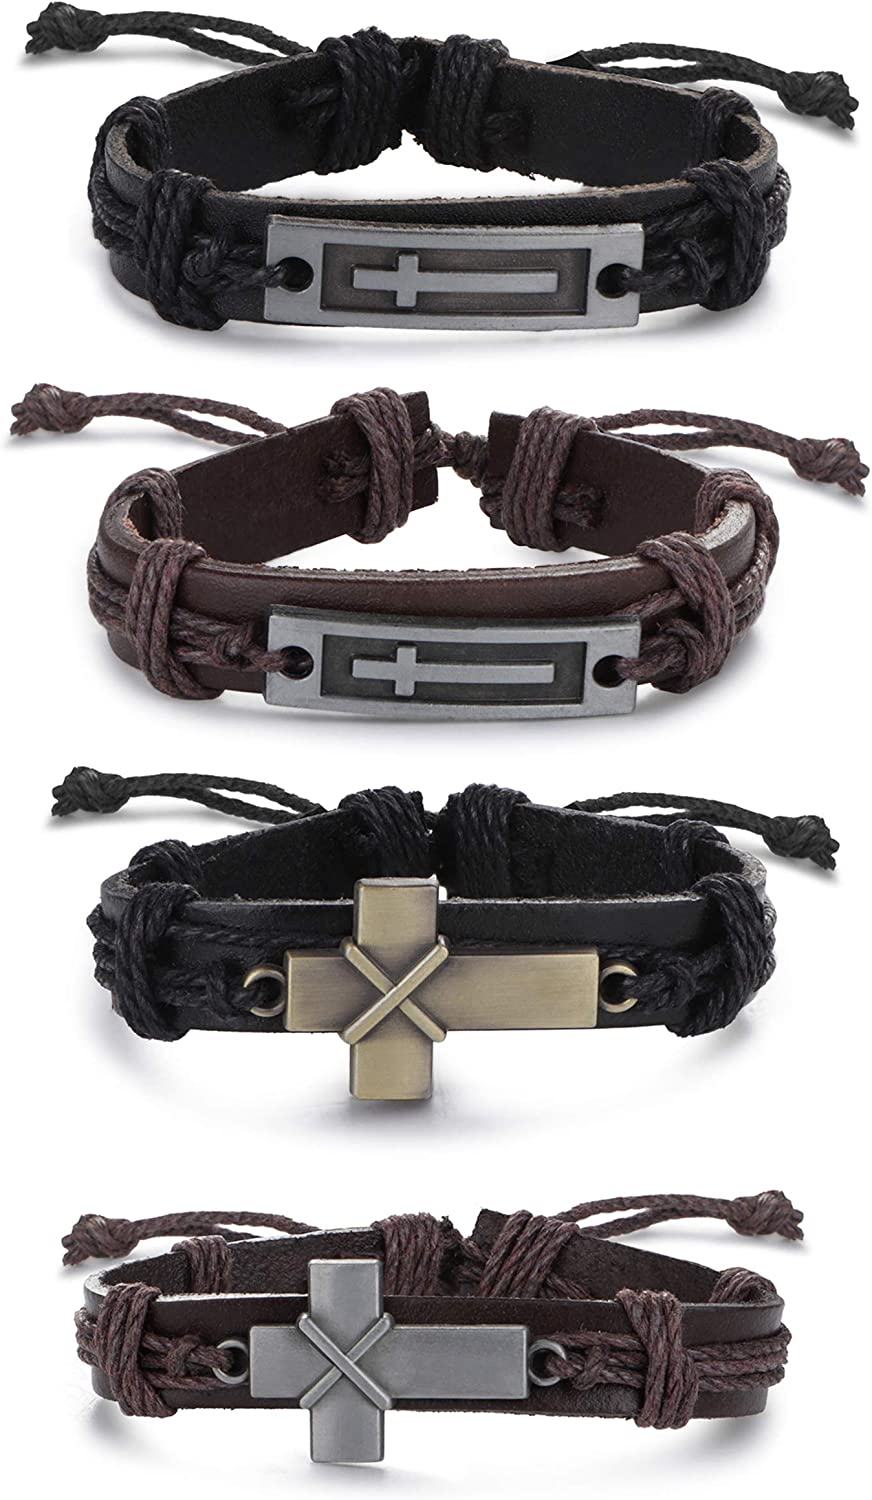 SAILIMUE 4 Pcs Cross Leather Bracelet for Men Religious Cross Tag Bangle Leather Wristband Adjustable Drawstring Bracelet Set